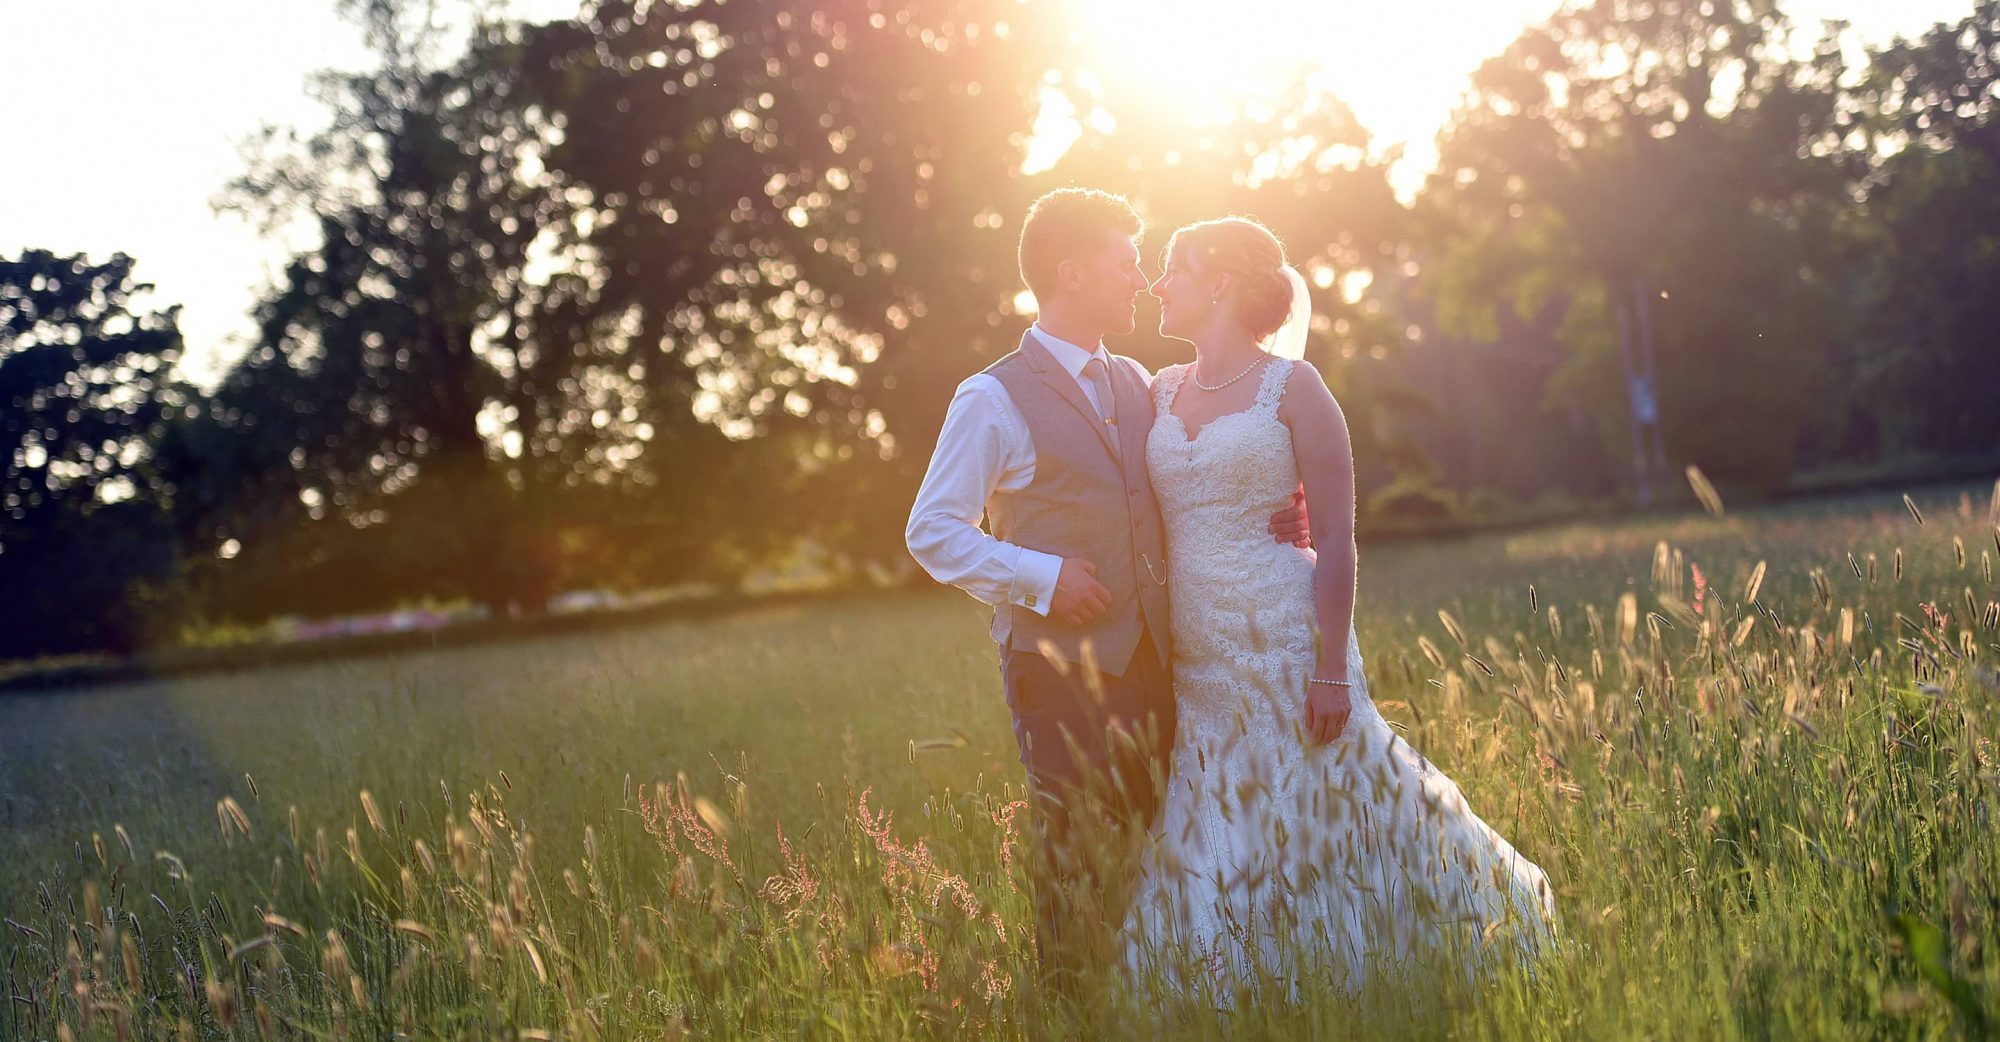 Bury St Edmunds Wedding Photography by Gregg Brown